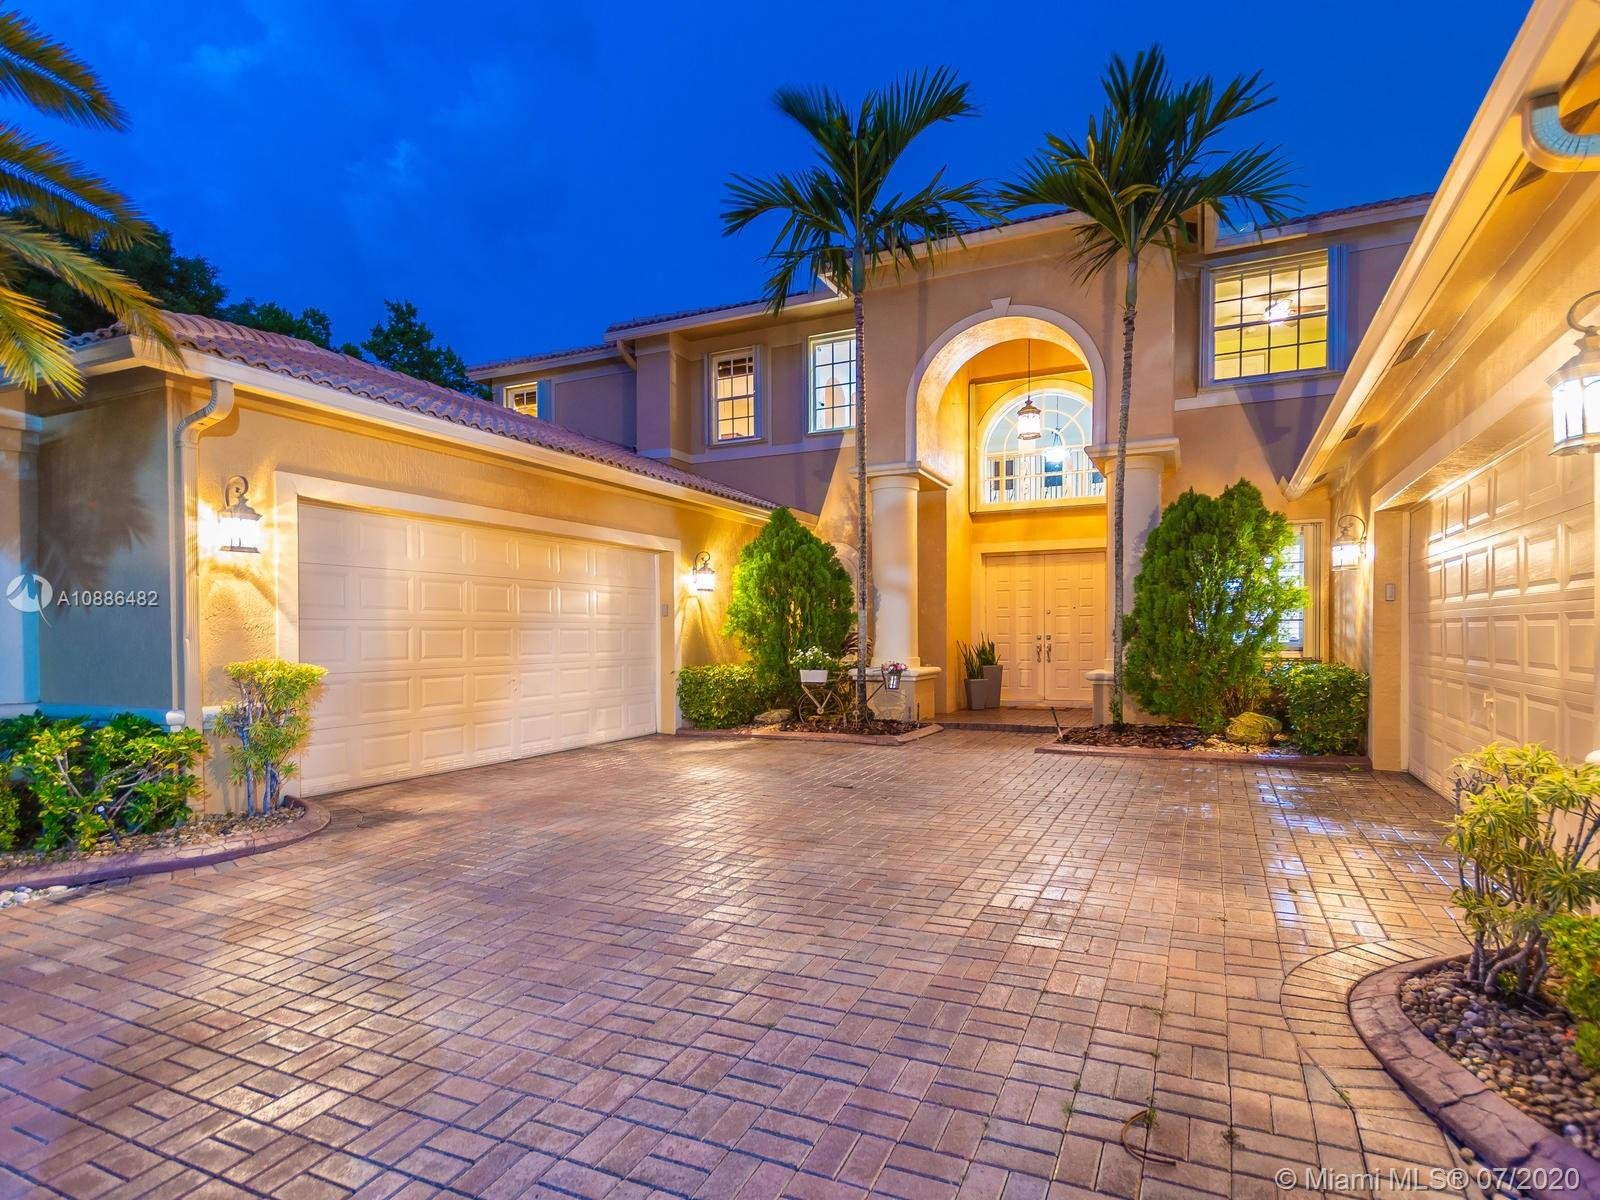 Enjoy Florida's lifestyle on this PERFECT PARADISE estate! 6 BEDROOMS+OFFICE+LOFT / 5.5 BATH on the LARGEST and most spectacular CUL DE SAC POINTE WATER lot in all of the Isles at Weston. SCREENED POOL w/covered patio, FULLY FENCED, private landscaped yard. PANORAMIC LAKE views. This grand MONTEGO model boasts over 5,000 sqft that has it all! Open floor plan w/soaring ceilings, family room, breakfast area, beautiful gourmet kitchen with s/s appliances & granite counters/wood cabinets, huge walk-in pantry, wine cooler, large laundry room. WOODEN floors/CUSTOM built-in closets in all bedrooms. PLANTATION SHUTTERS, French doors. OVERSIZED Master Bed downstairs, TWO-DOUBLE car garages, accordians, RENOVATED club house w/GYM, Gated, A+ SCHOOLS. Don't miss this opportunity to live in the SHORES!